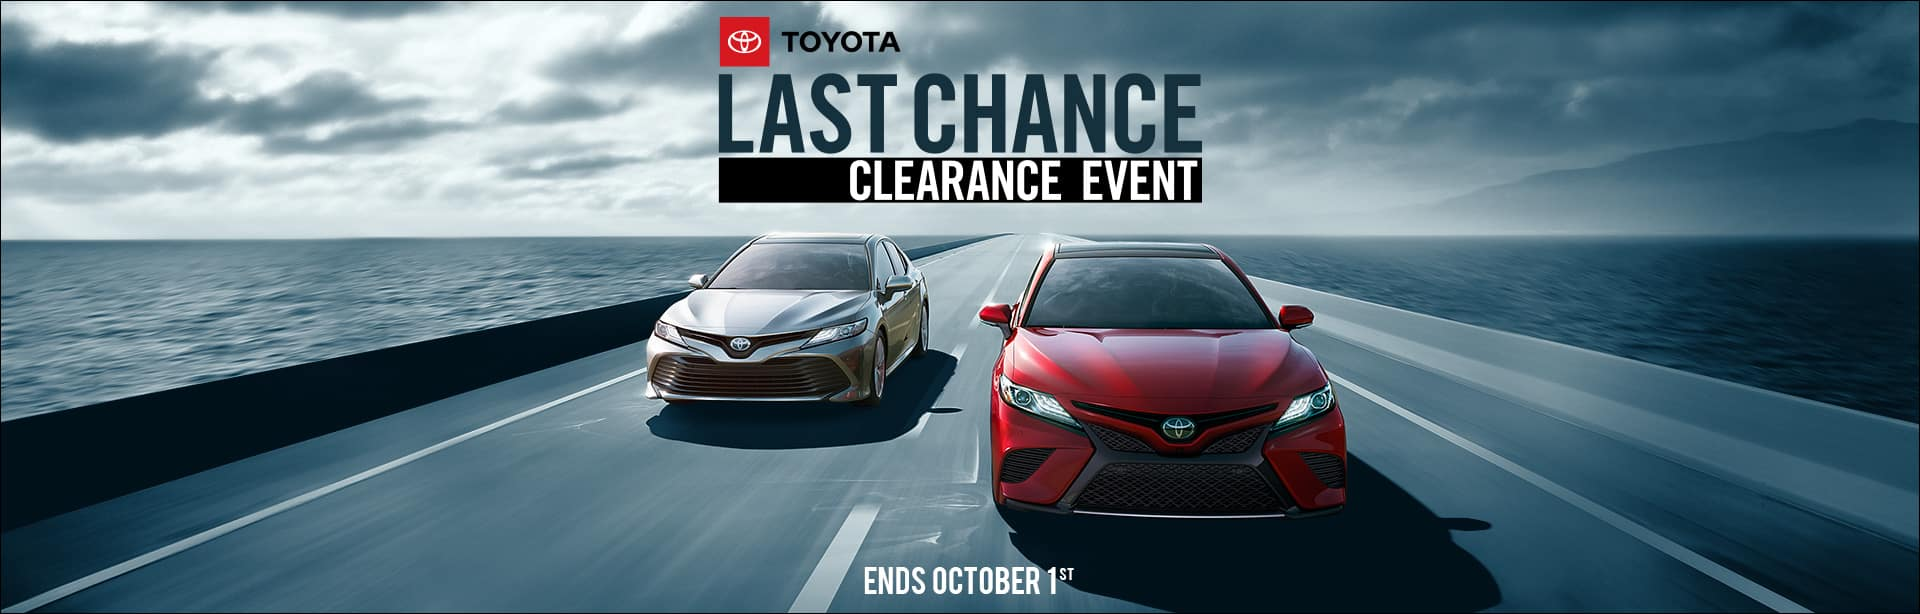 Toyota Last Chance Clearance Event Cain Toyota North Canton Ohio